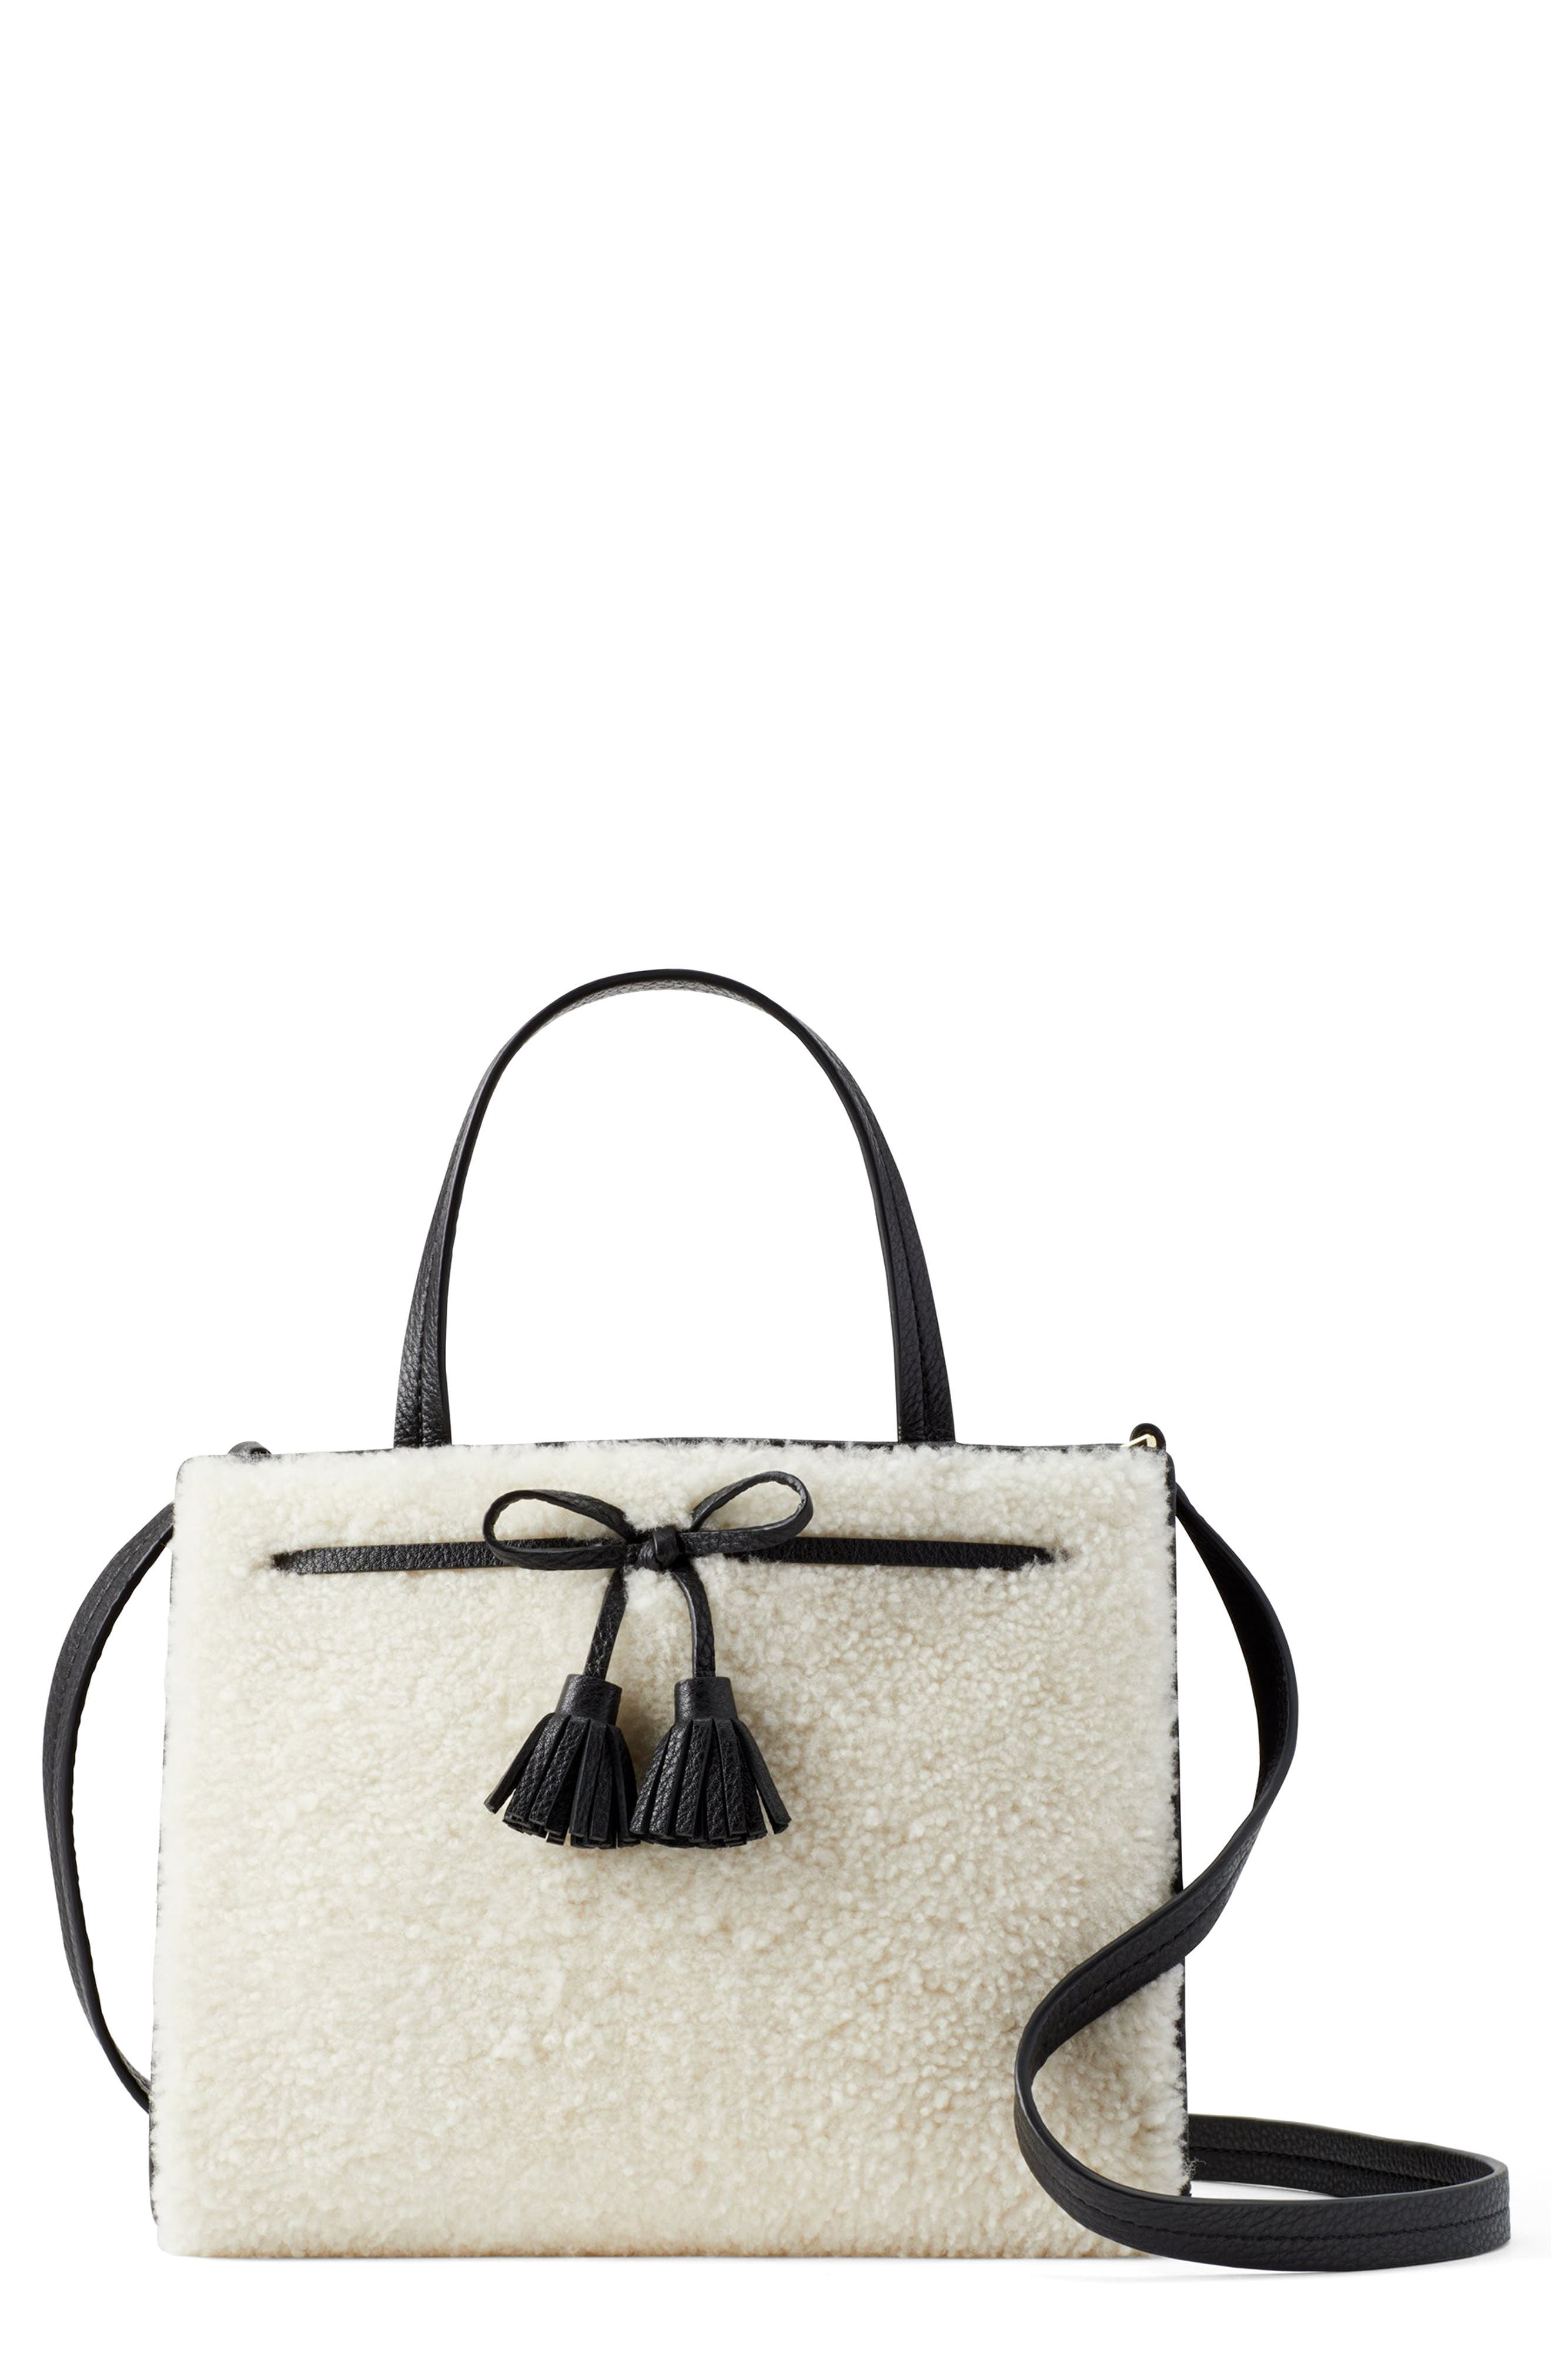 Hayes Street - Sam Genuine Shearling & Leather Satchel - Black in Cement